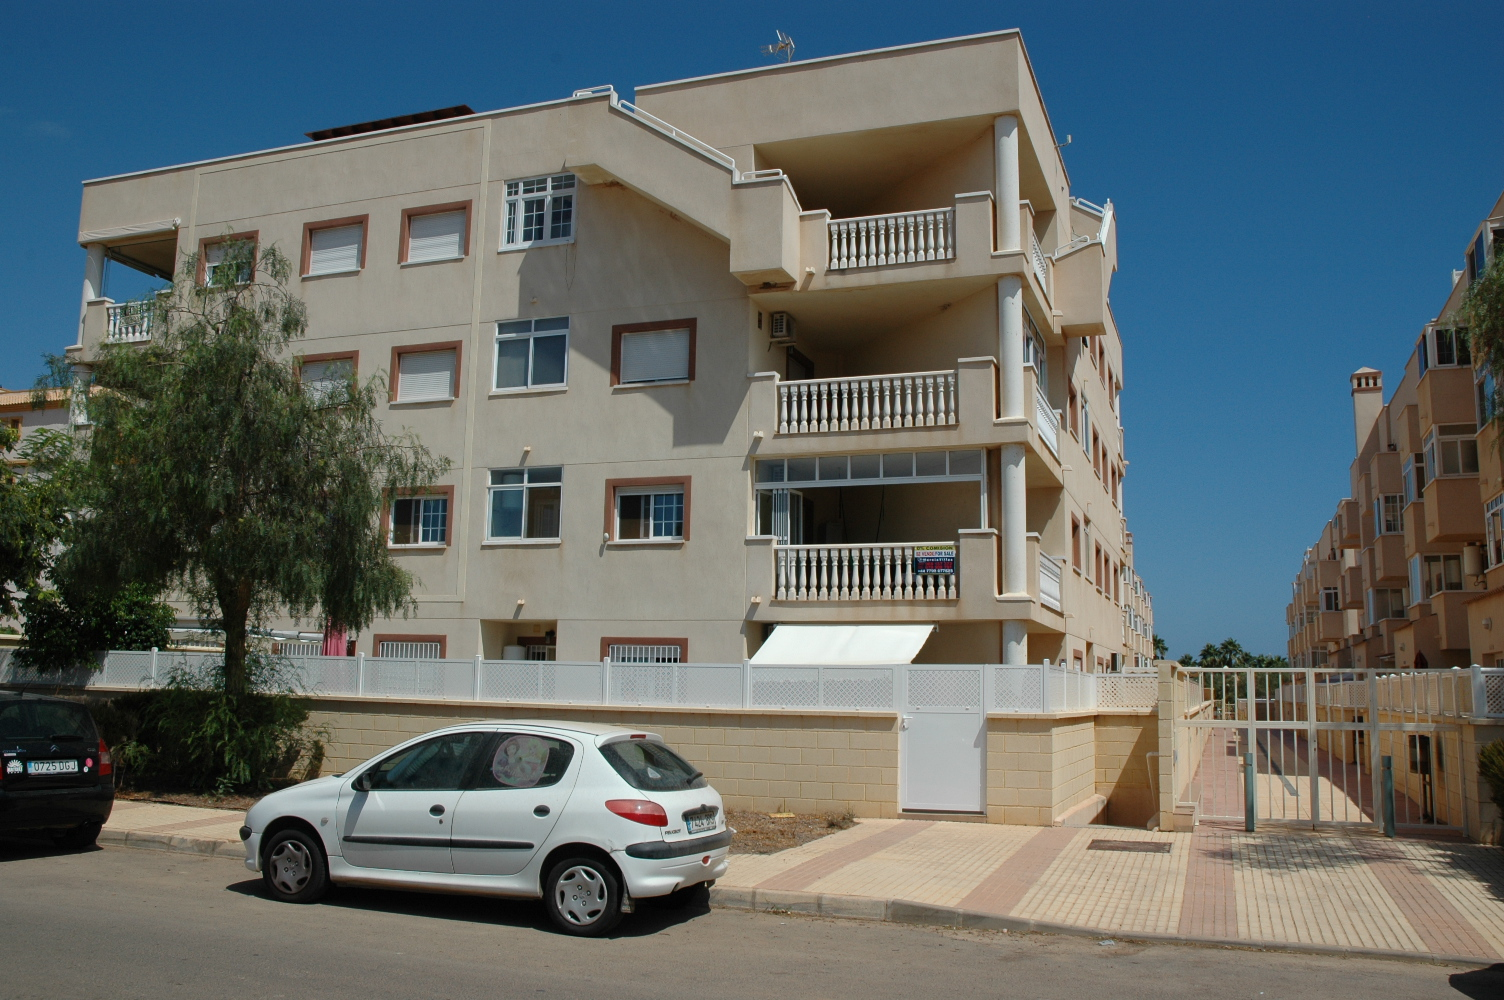 Ref:MAR-03 Apartment For Sale in Mar De Cristal